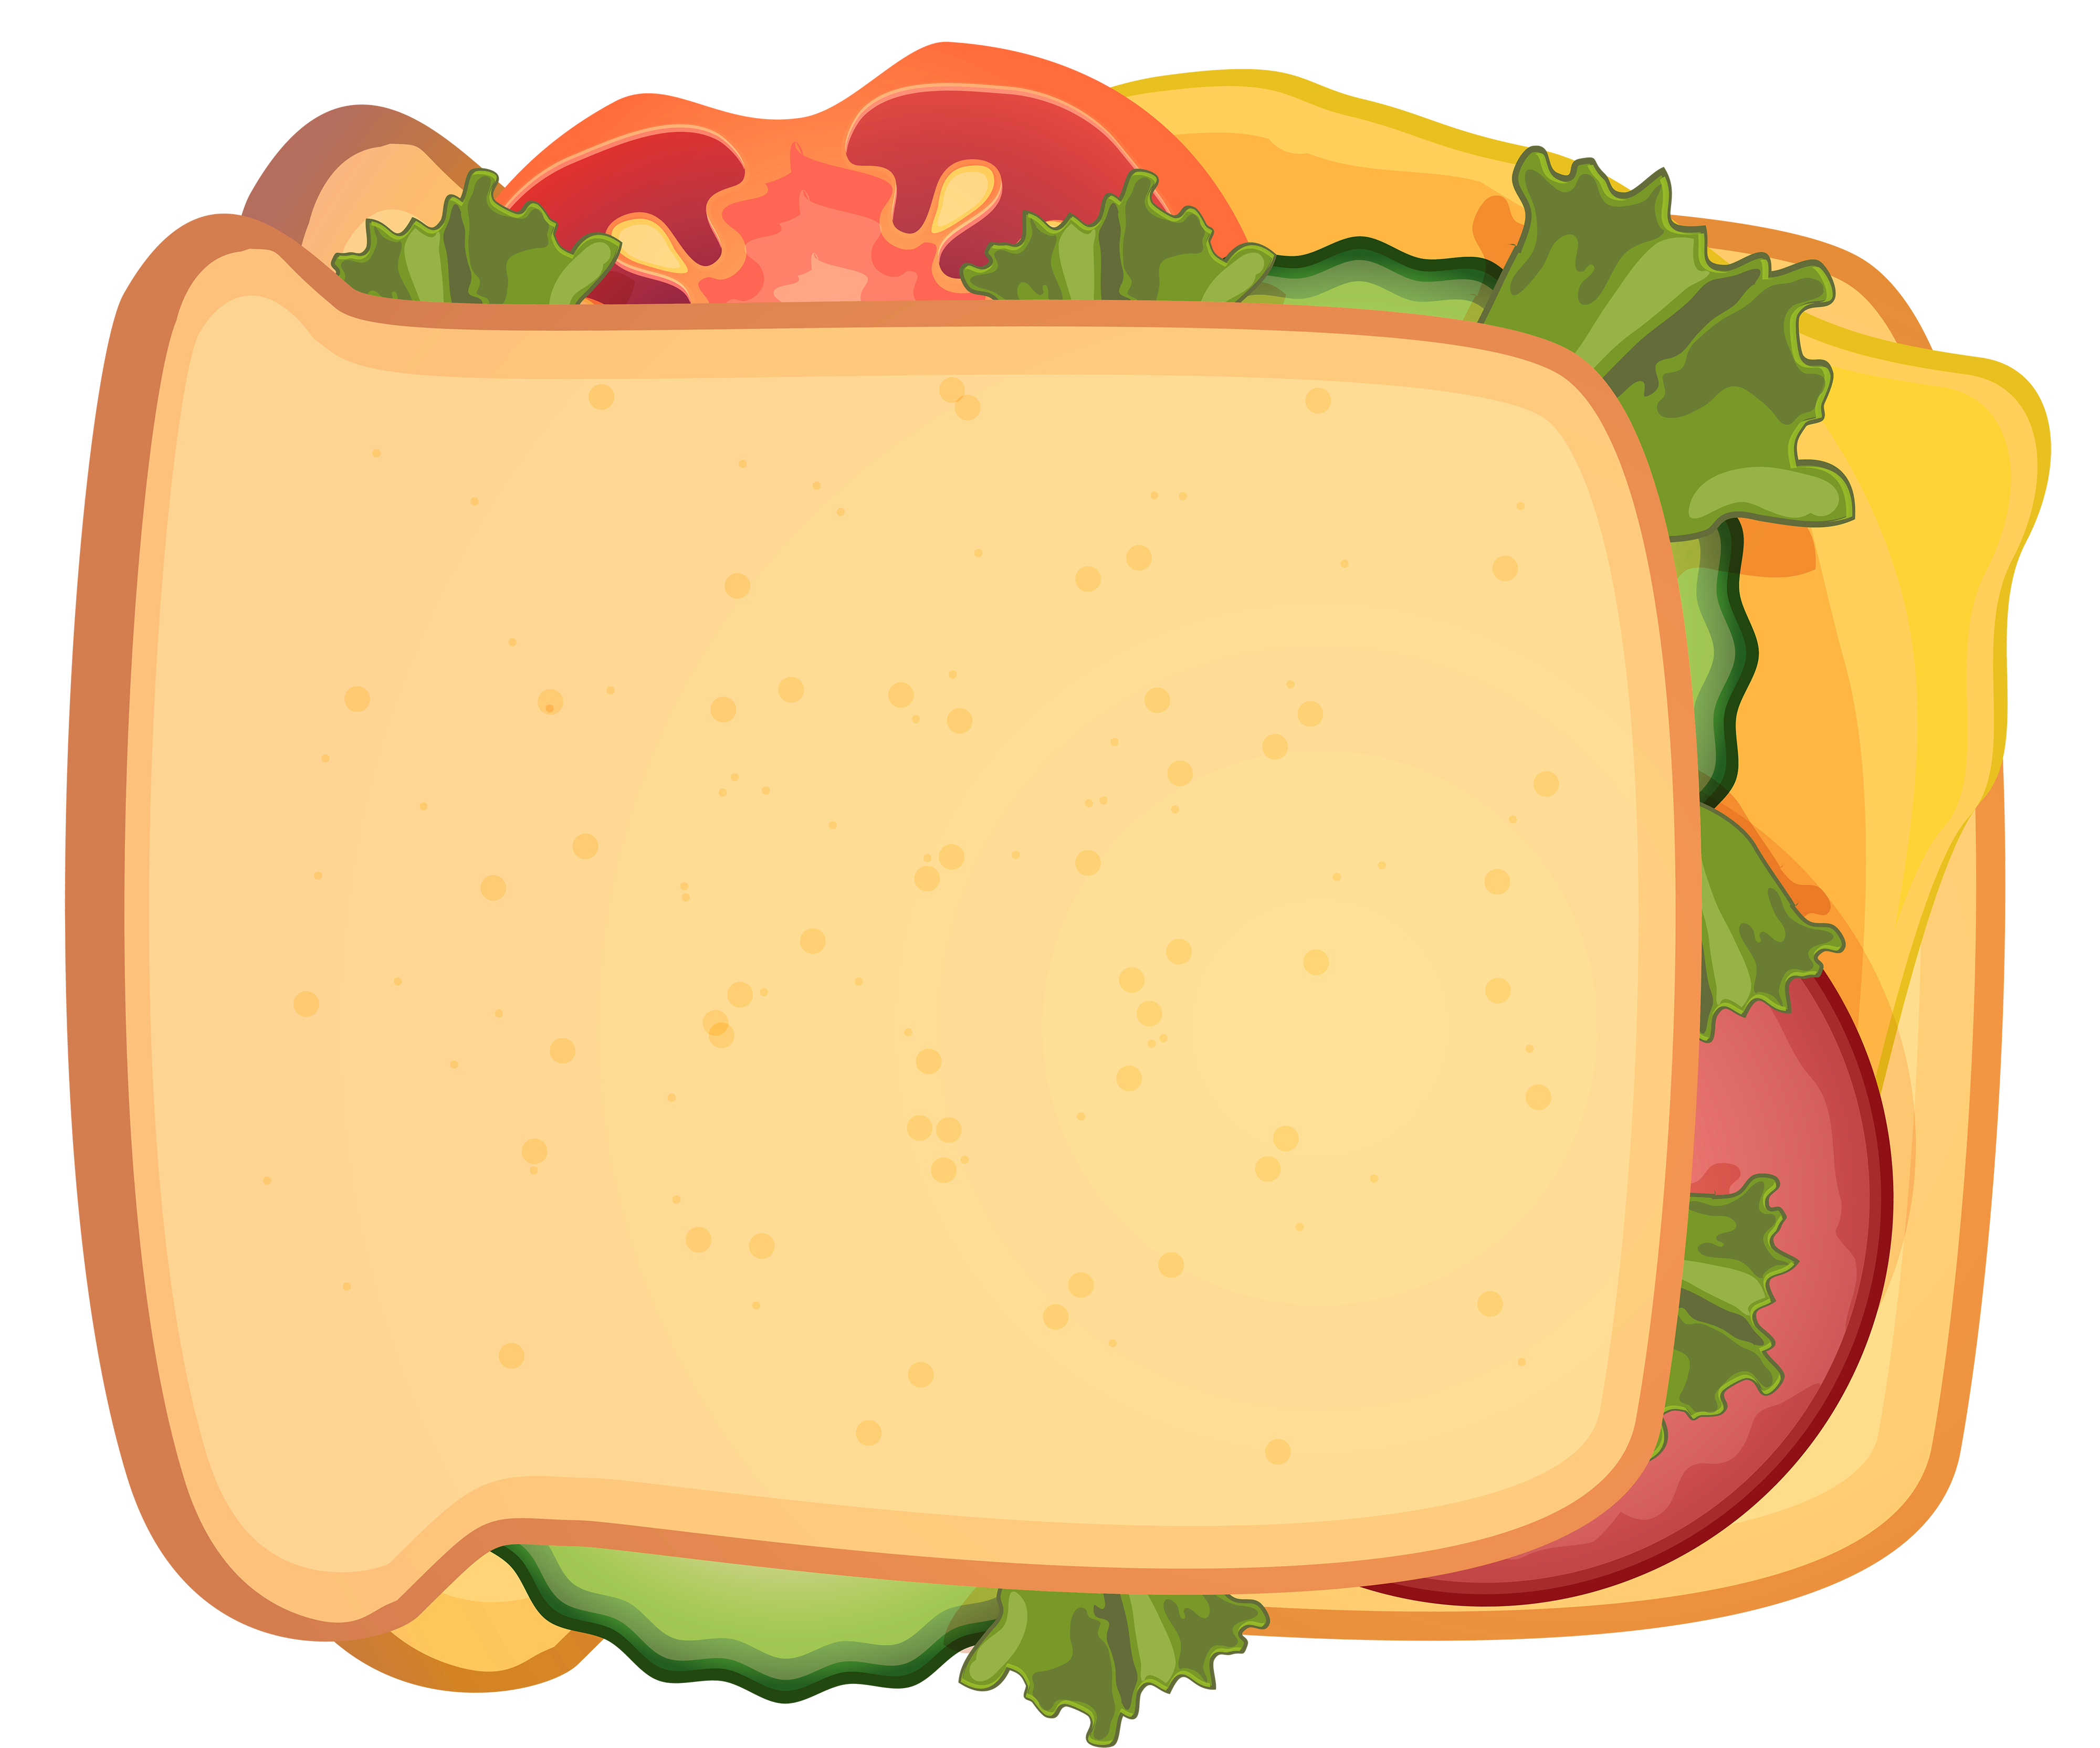 Clipart fish sandwich image library stock Sandwich PNG Clipart - Best WEB Clipart image library stock